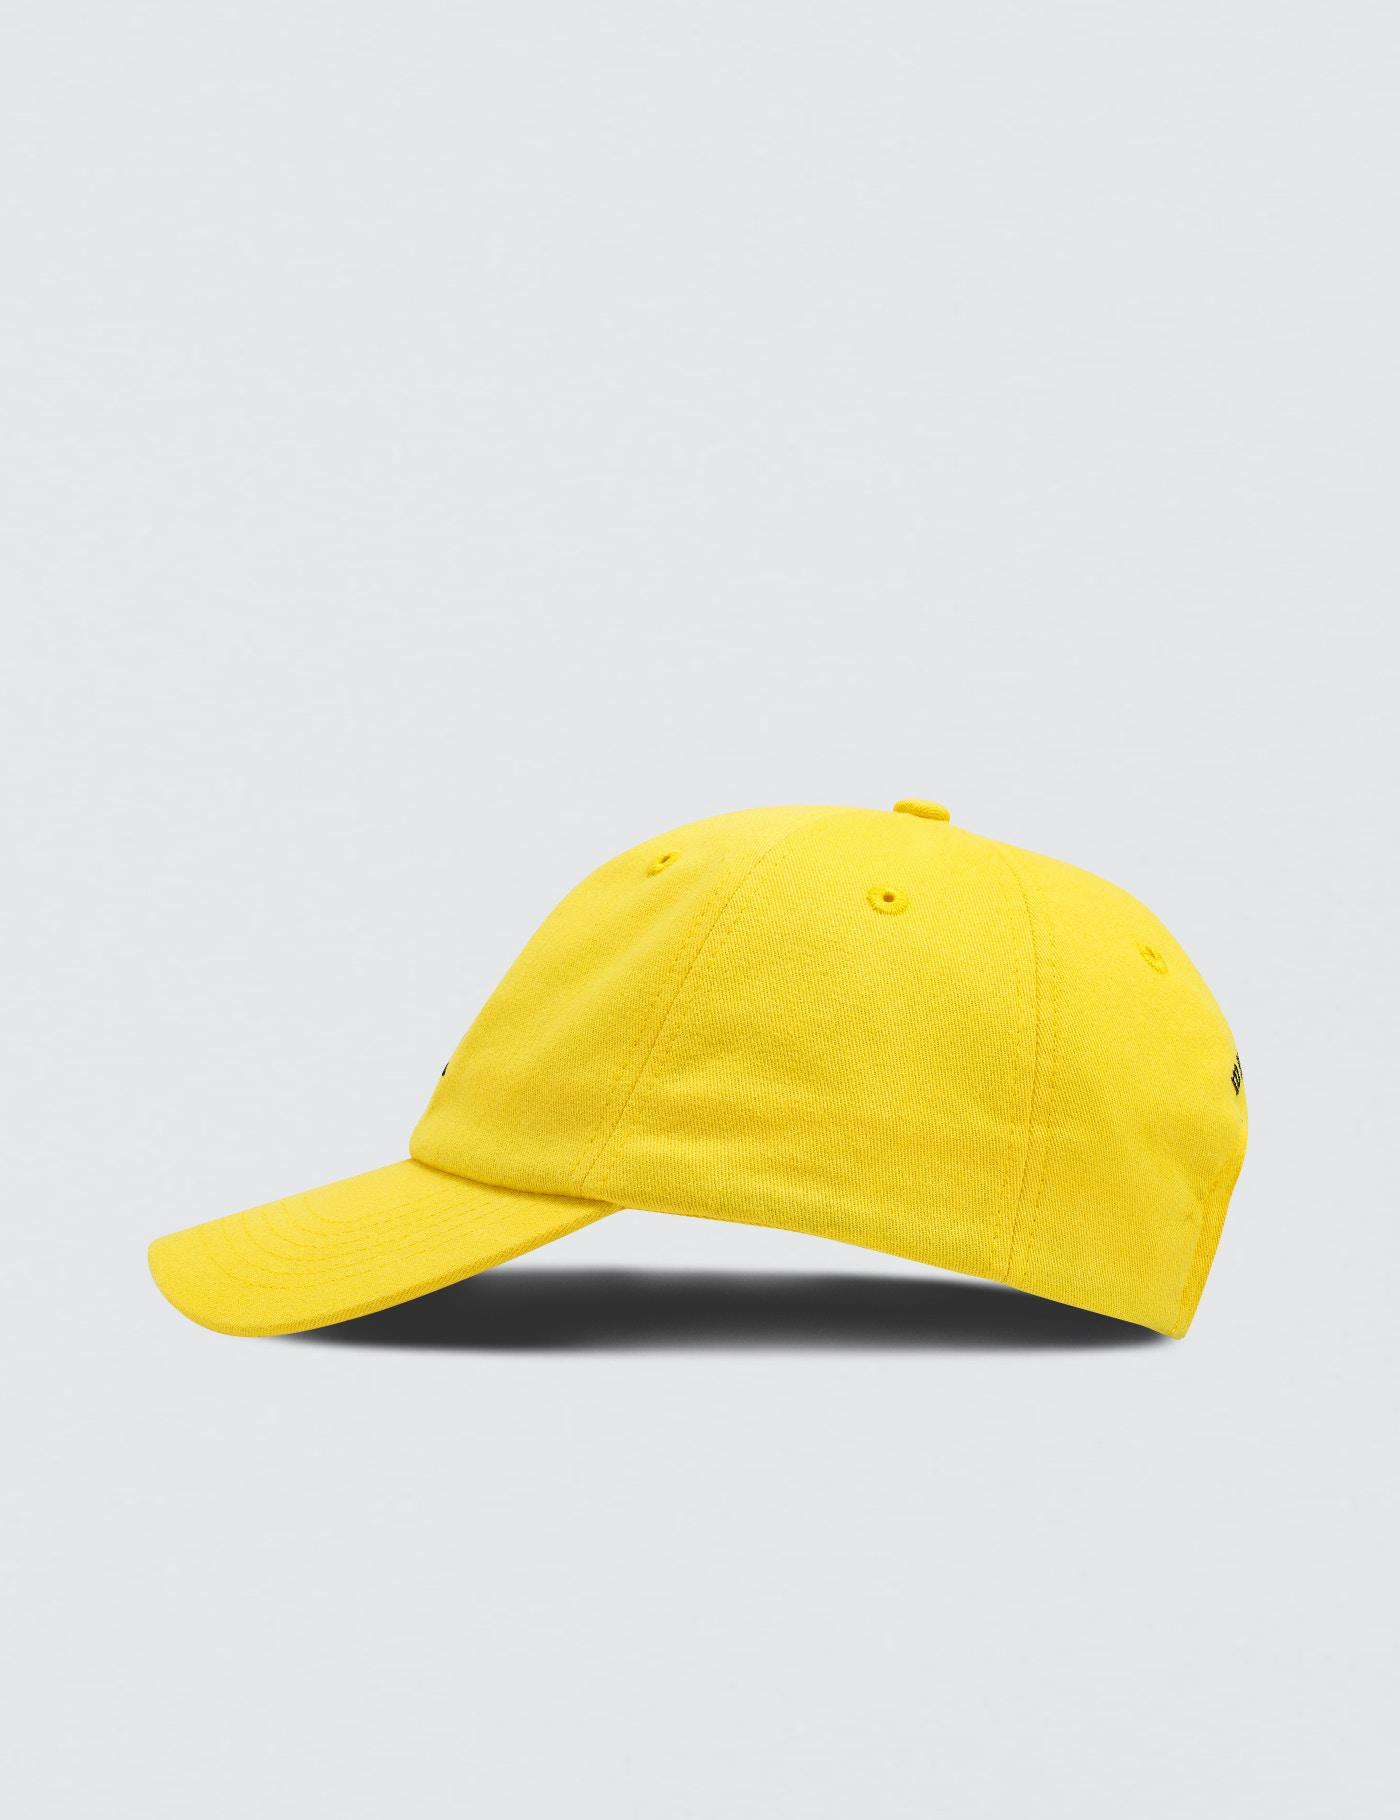 Lyst - Wasted Paris Loveless Cap in Yellow for Men 05cb6f3111c